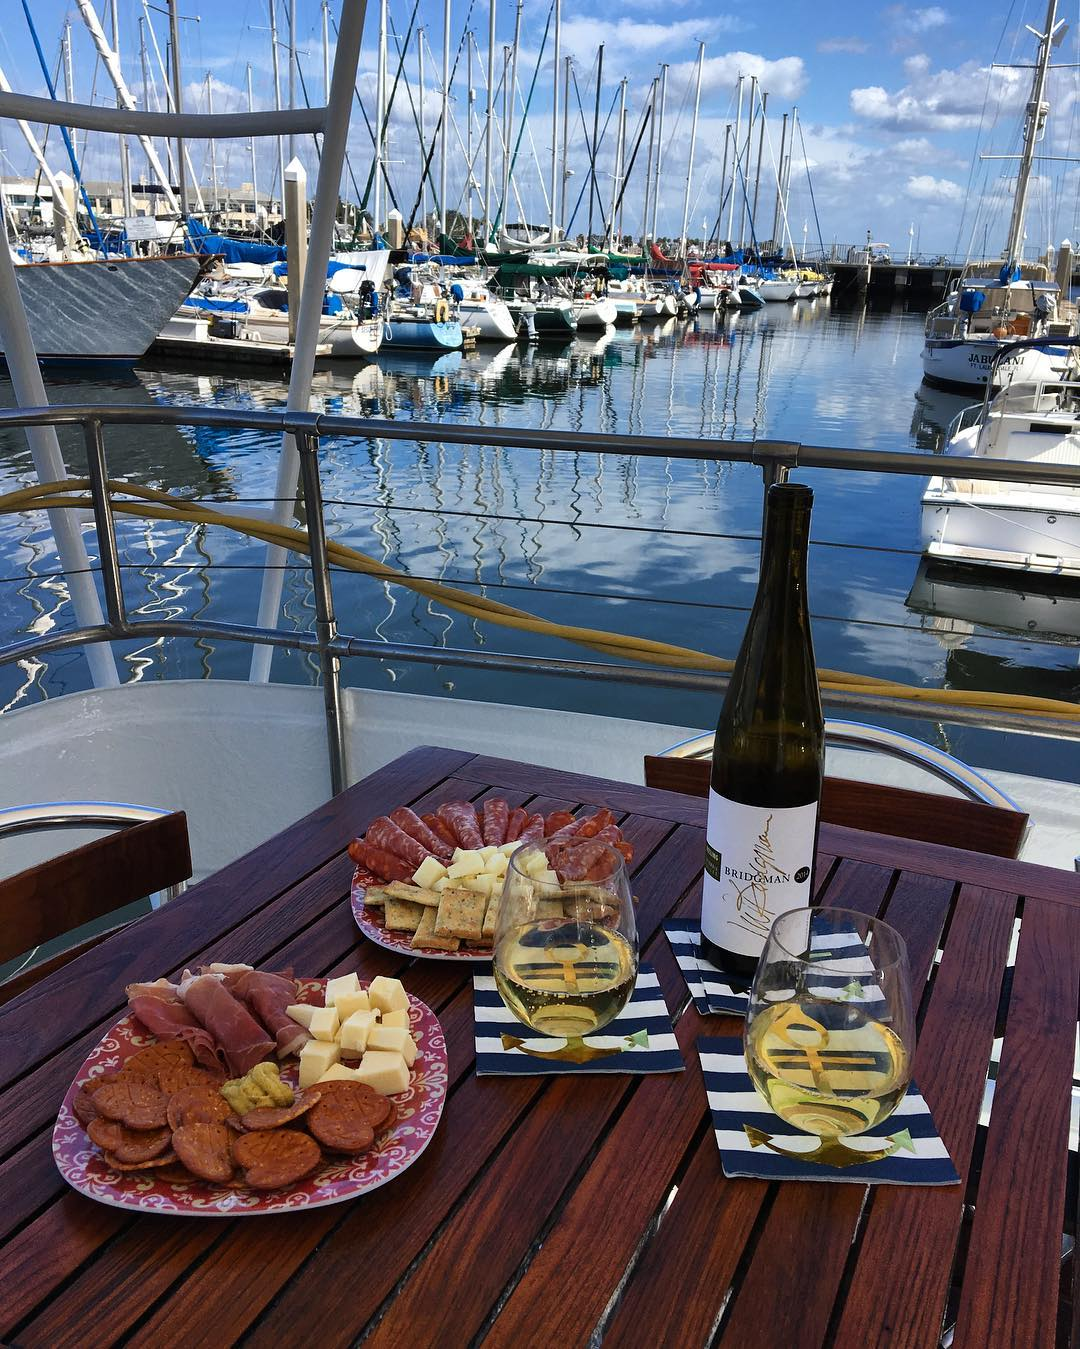 Everything happens for a #Riesling 😍 Celebrating another busy week of successful charters ⚓️ • • • • #SmoothCs #TampaBayYachtCharter #USCGcertified #yachtcharter #StPete #Tampa #yacht #meetingprofs #eventprofs #liveamplified #meetamplified #vspc #loveFL #fivestarservice #yachtconcierge #instaburg #dtsp #marina